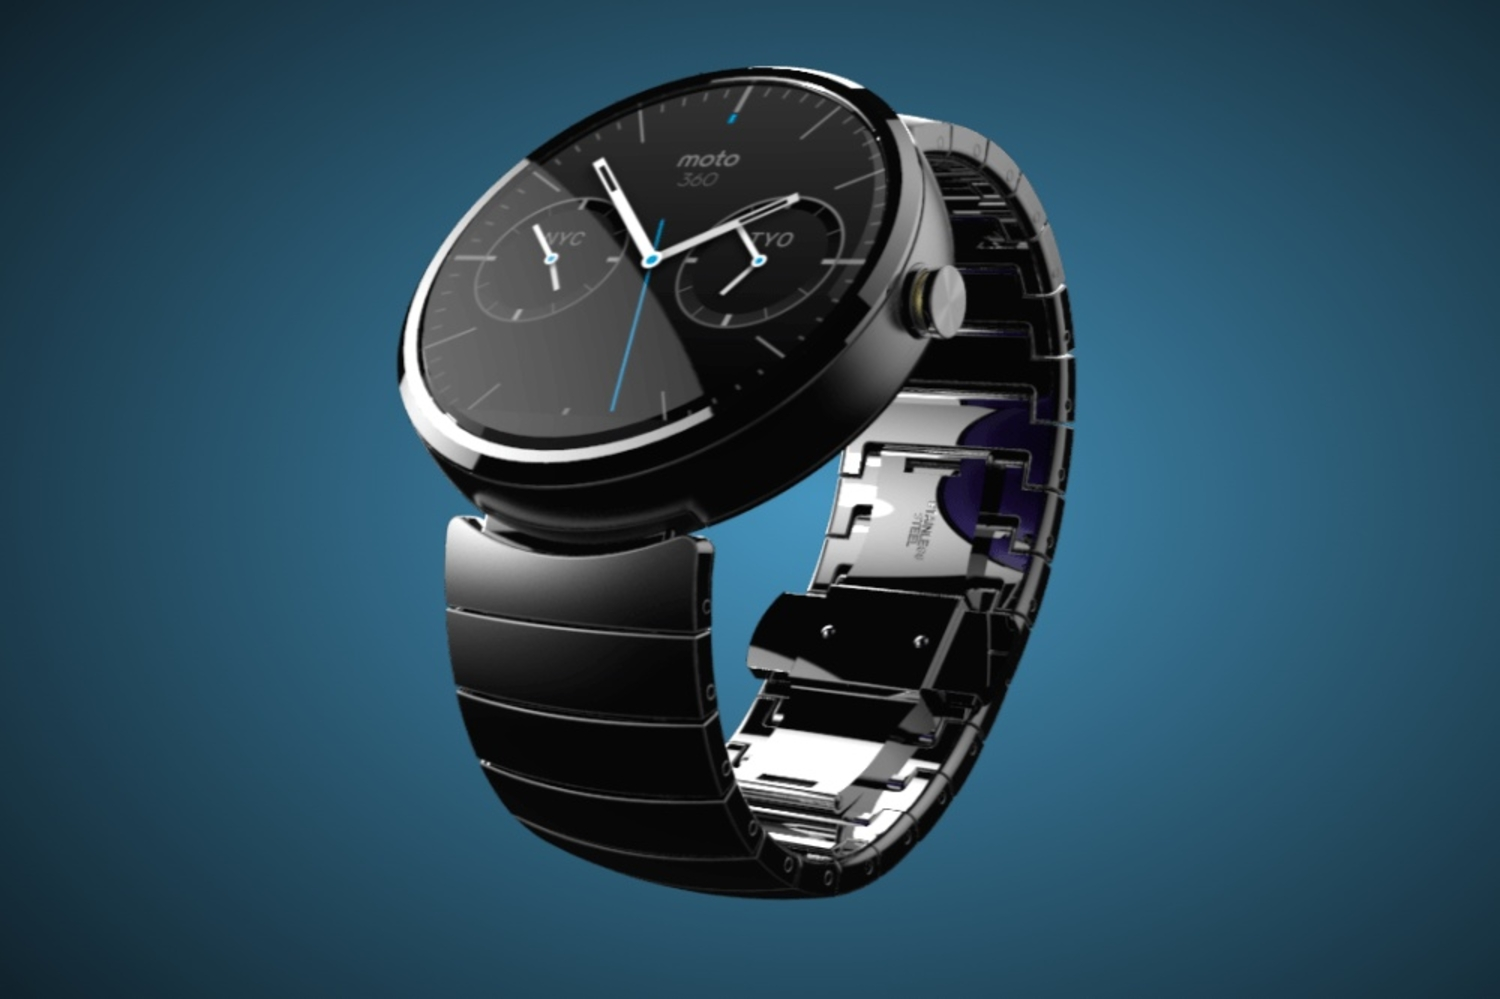 7 Smartwatches That Are Battling For Your Wallet